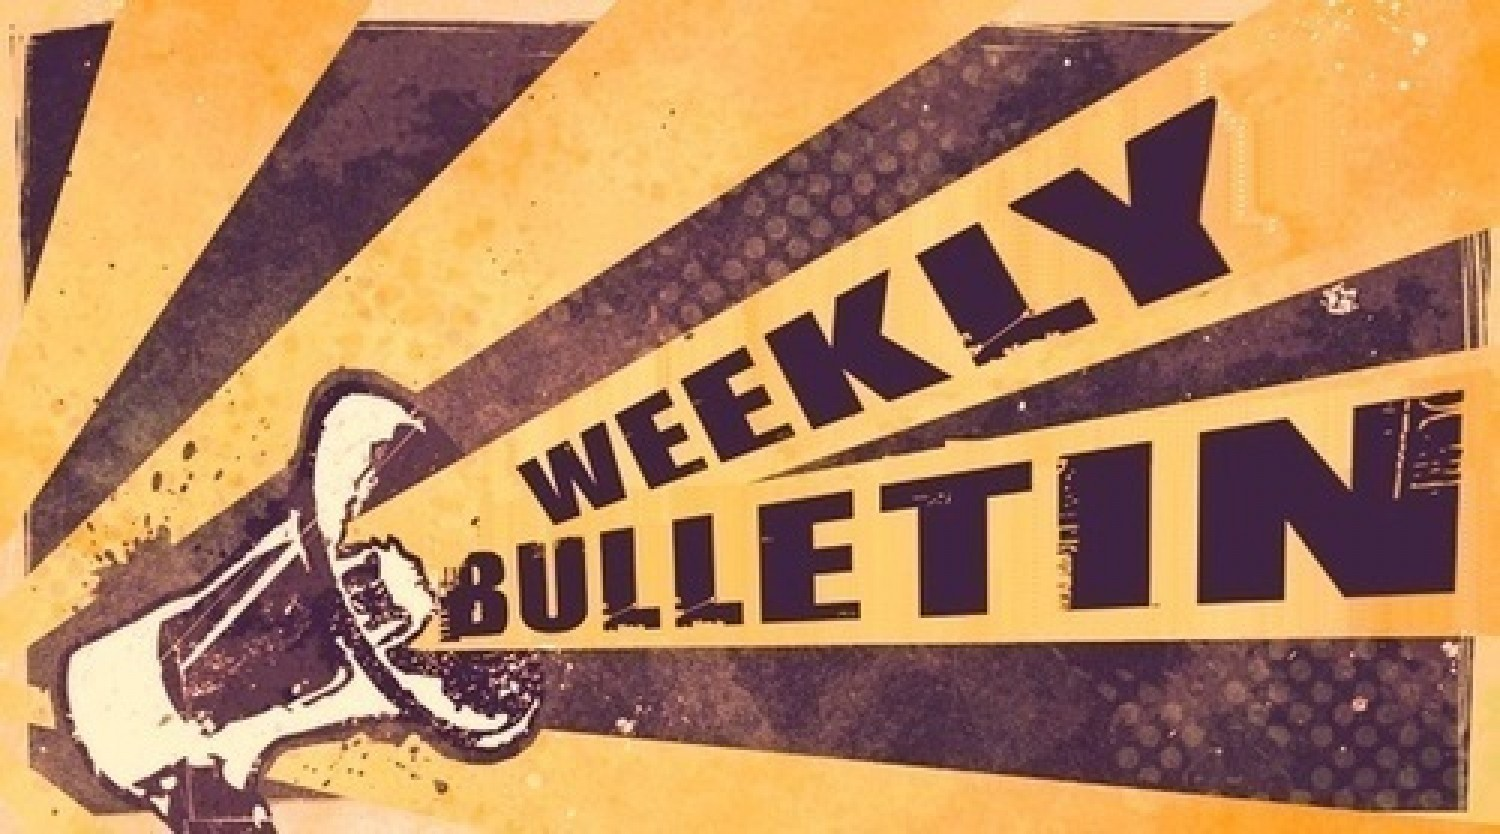 Weekly Bulletin March 8th